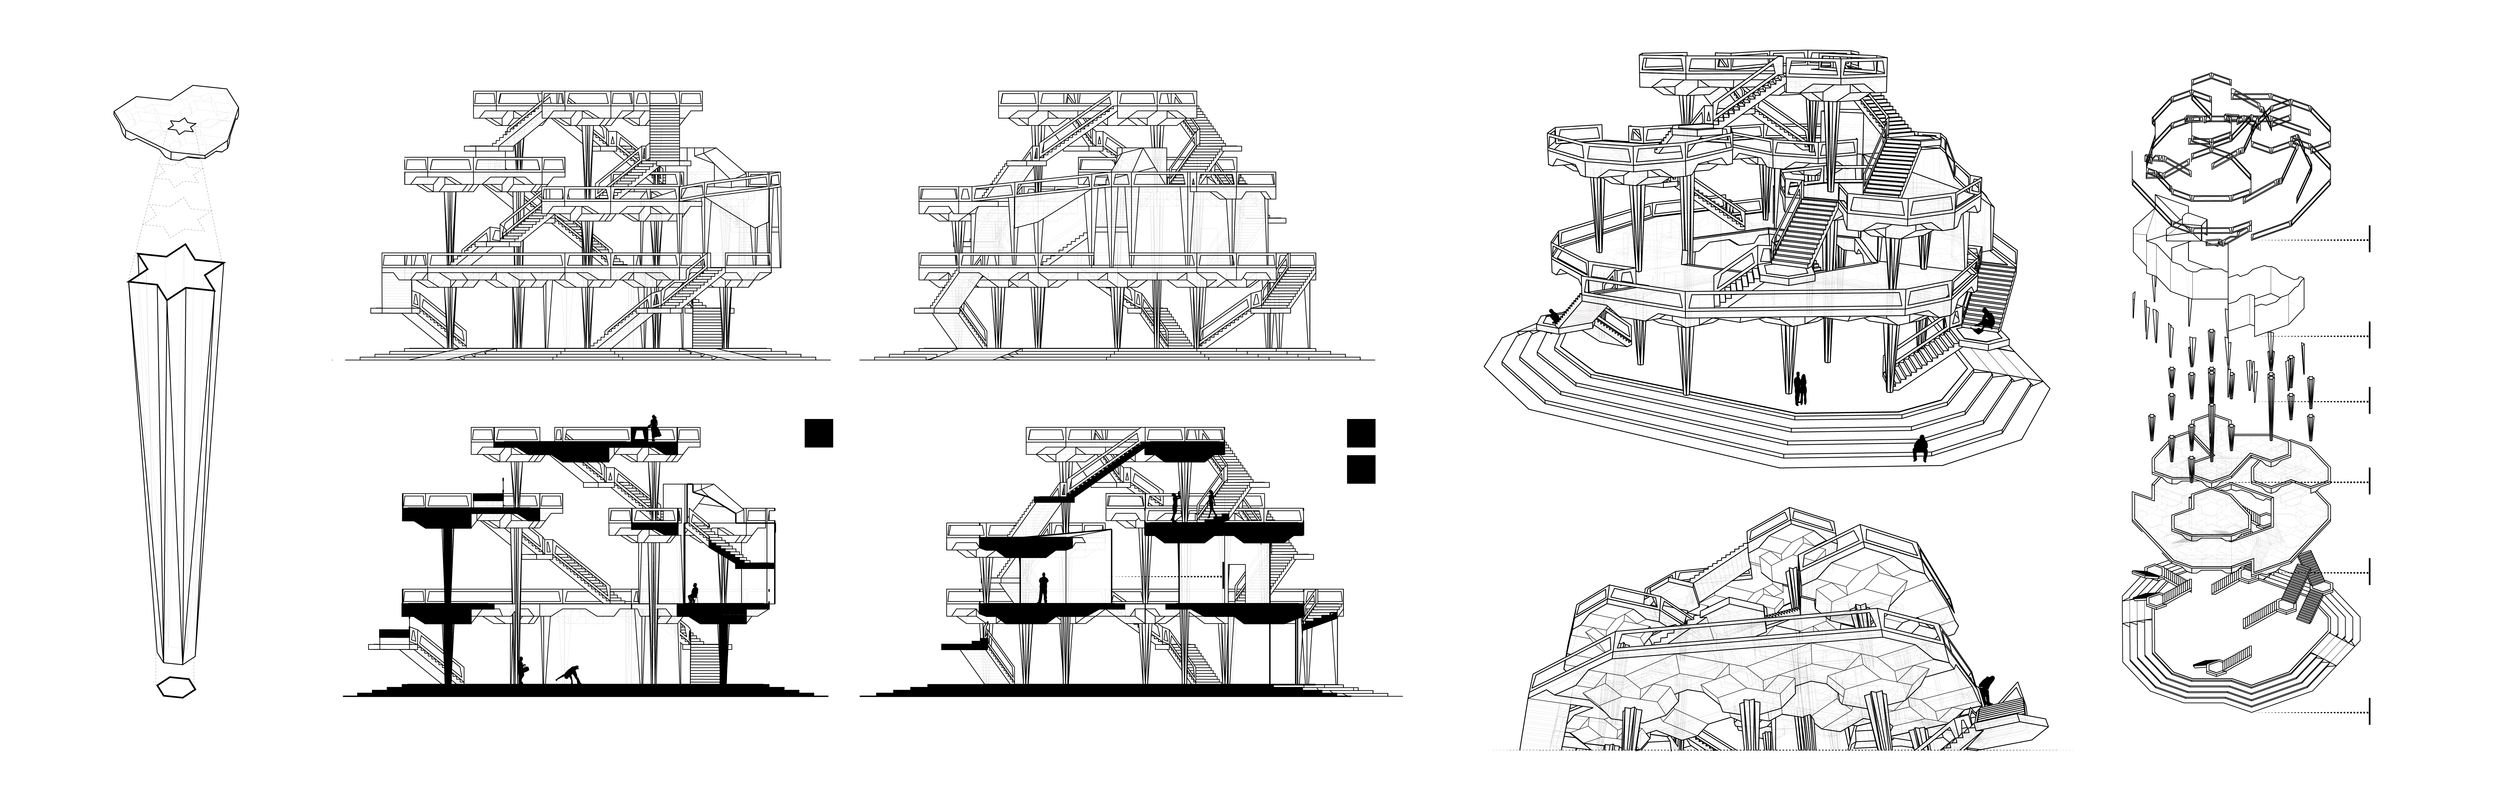 Column Shape, Elevations, Sections, Perspectives + Exploded Axonometric